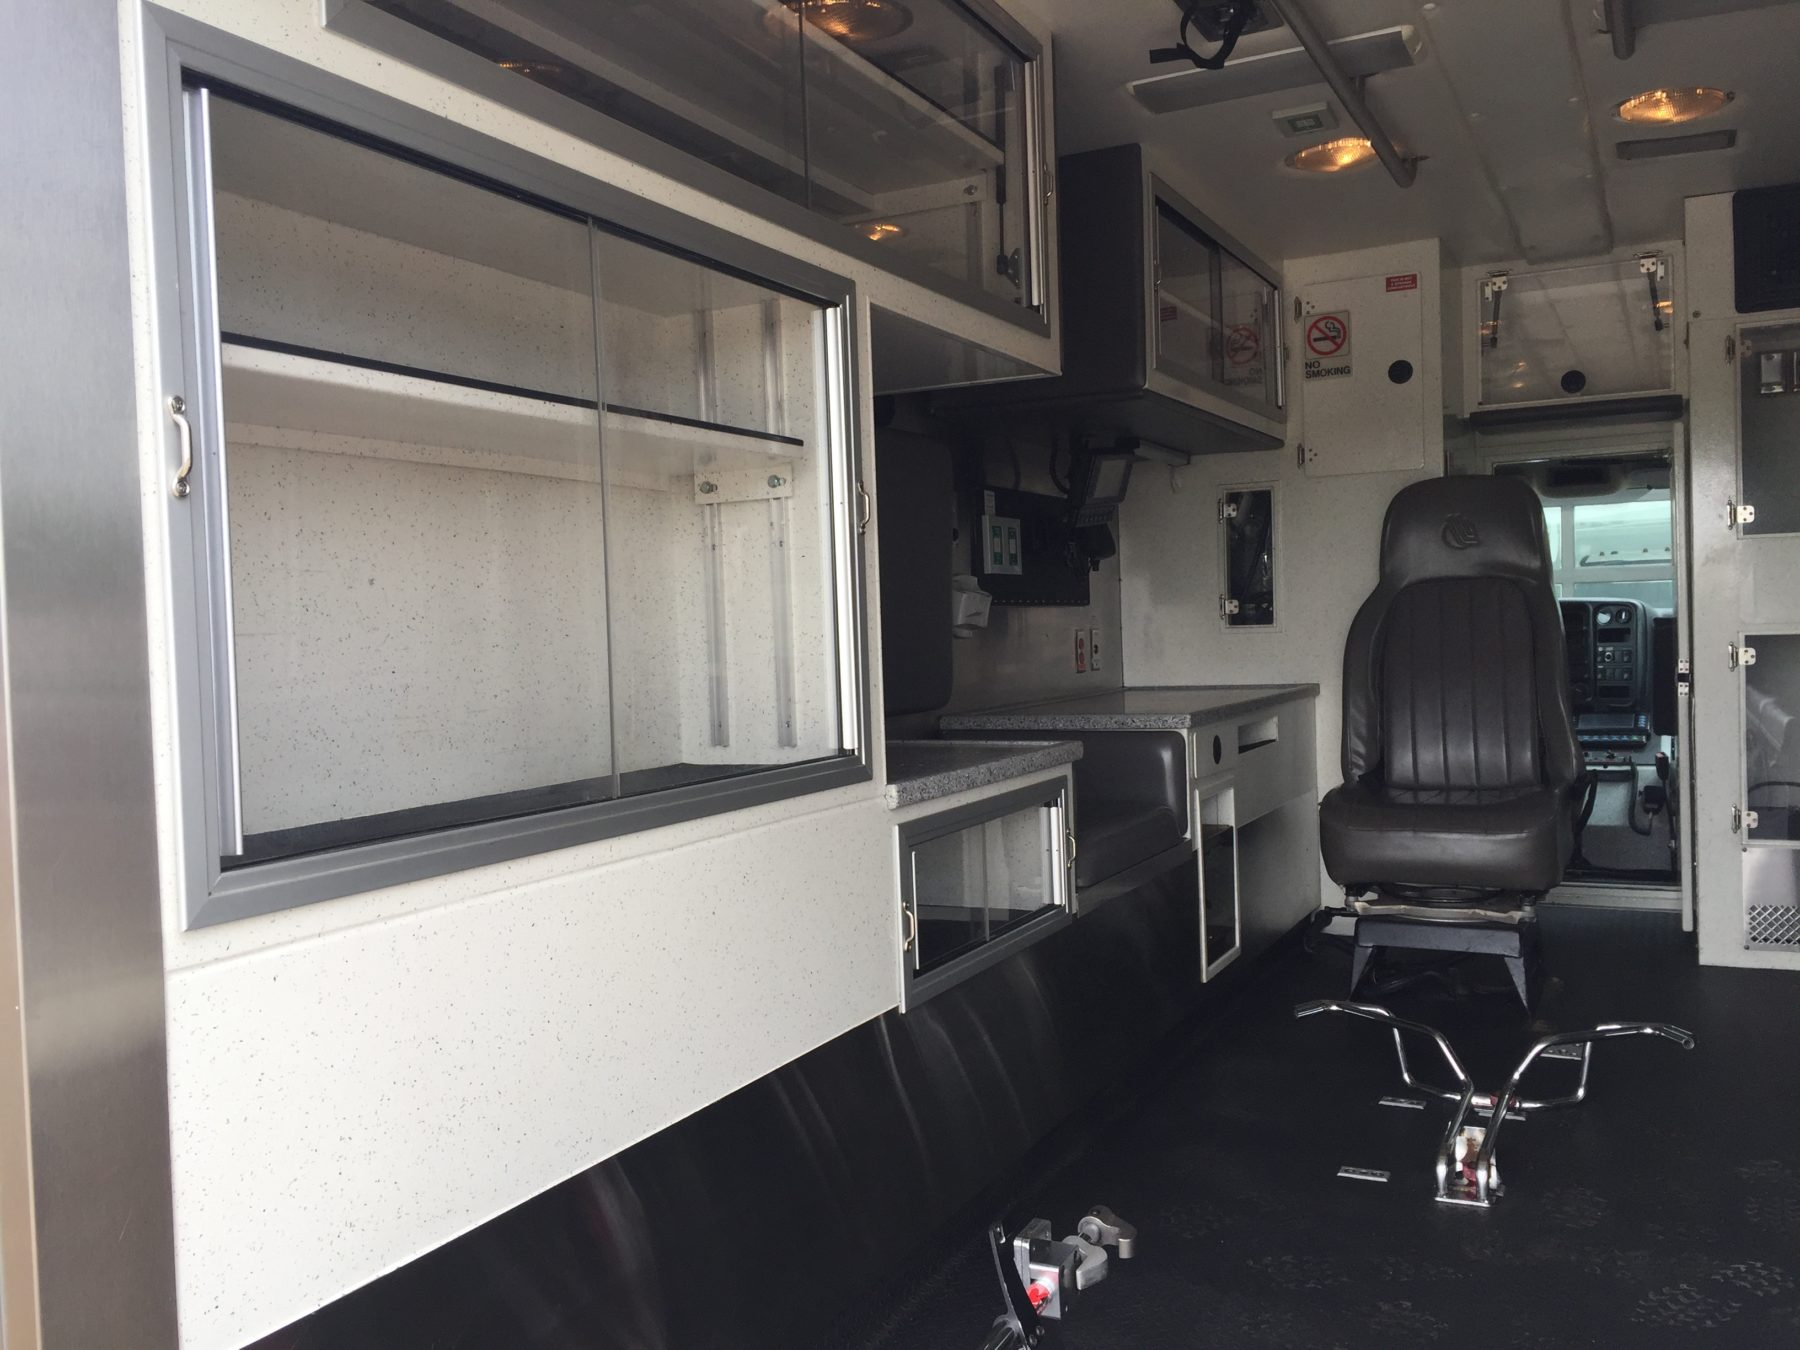 2006 Chevrolet C4500 Heavy Duty Ambulance For Sale – Picture 11